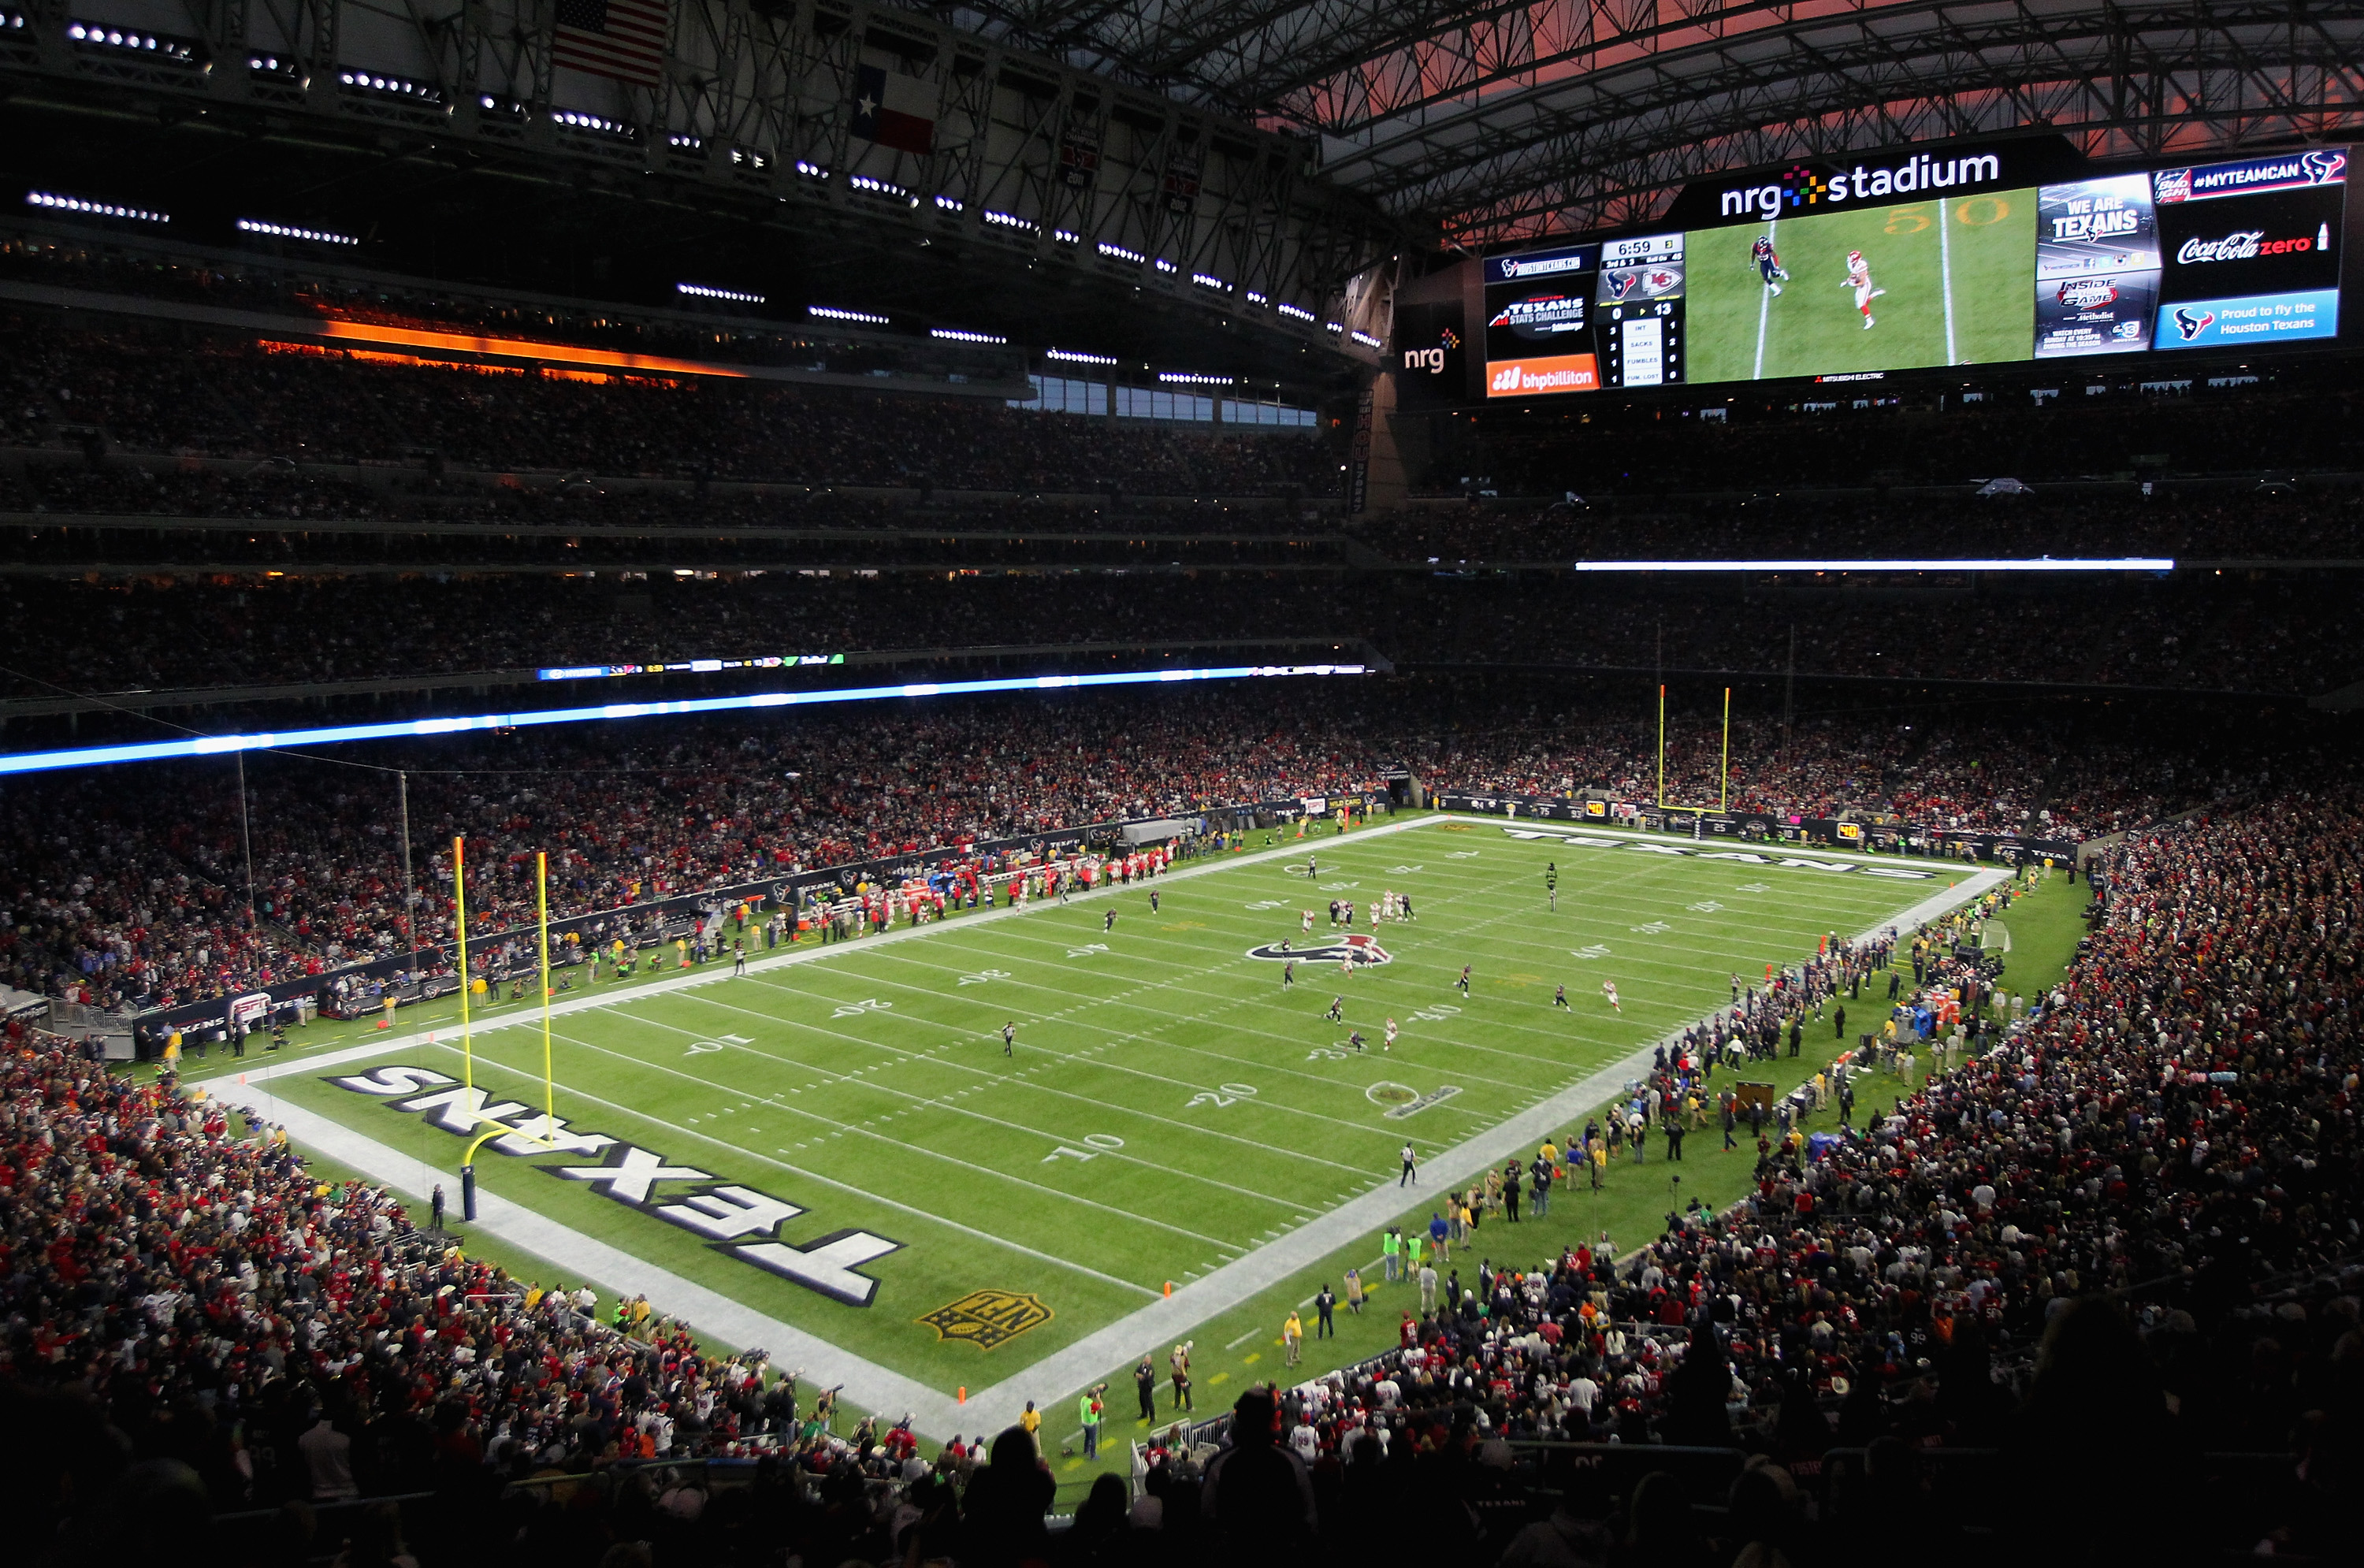 The first NFL facility to possess a retractable roof when it opened in 2002, Reliant is not only home of the Houston Texans but also the annual site of the Houston Livestock Show and Rodeo.